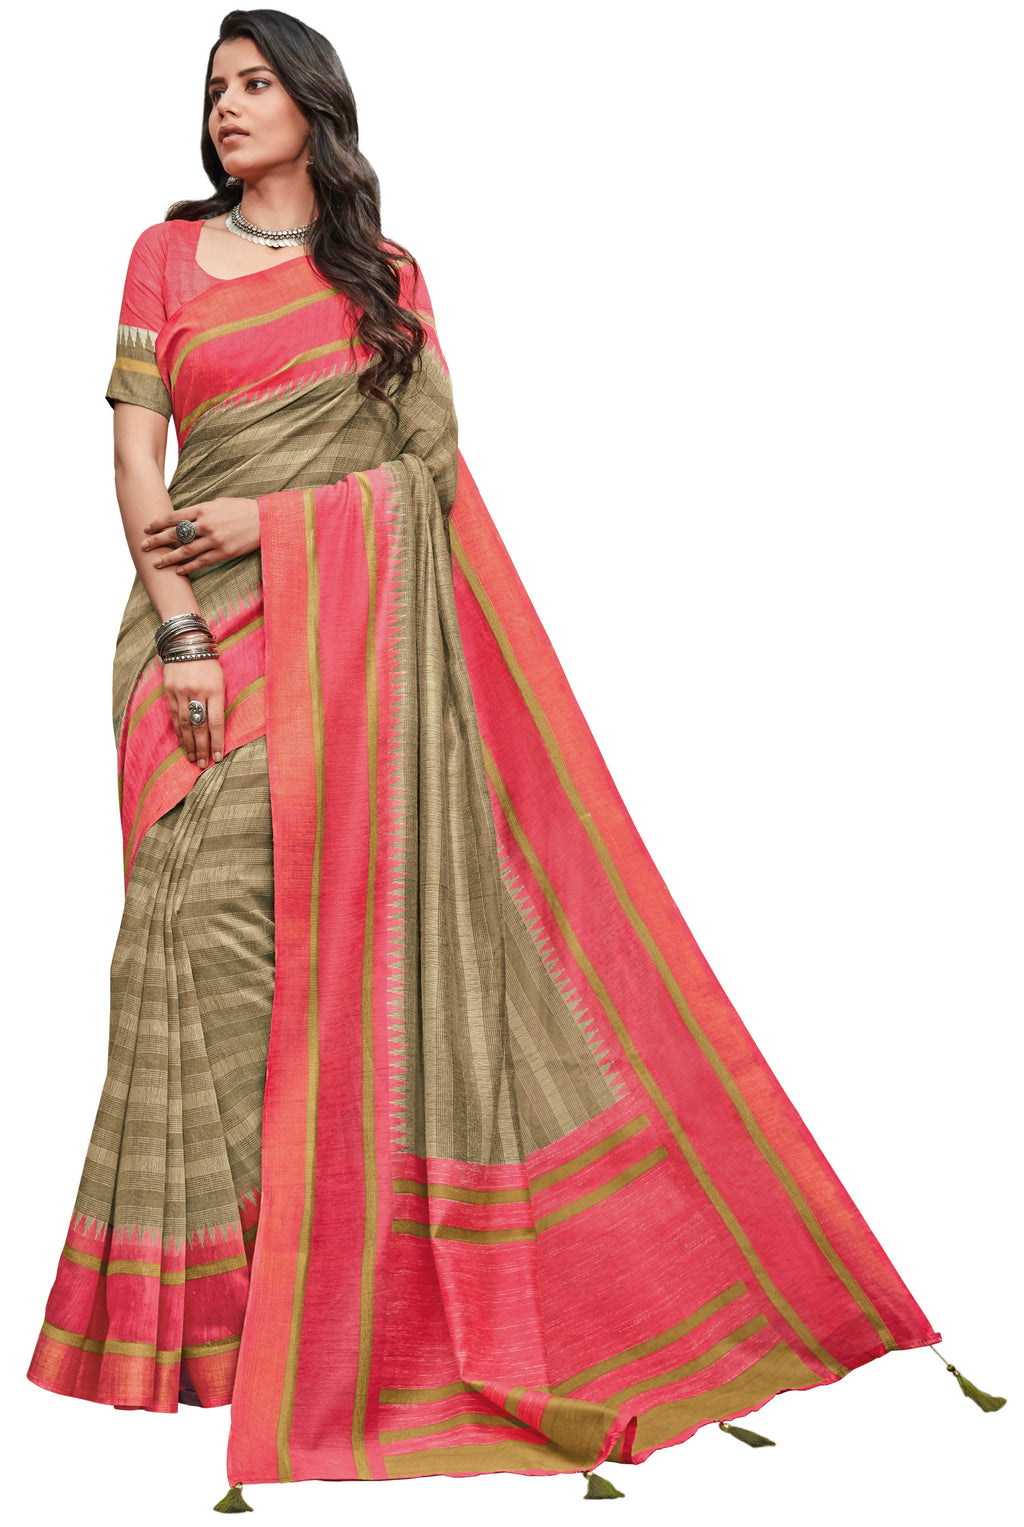 Beige Color Cotton Festive & Function Wear Sarees NYF-8508